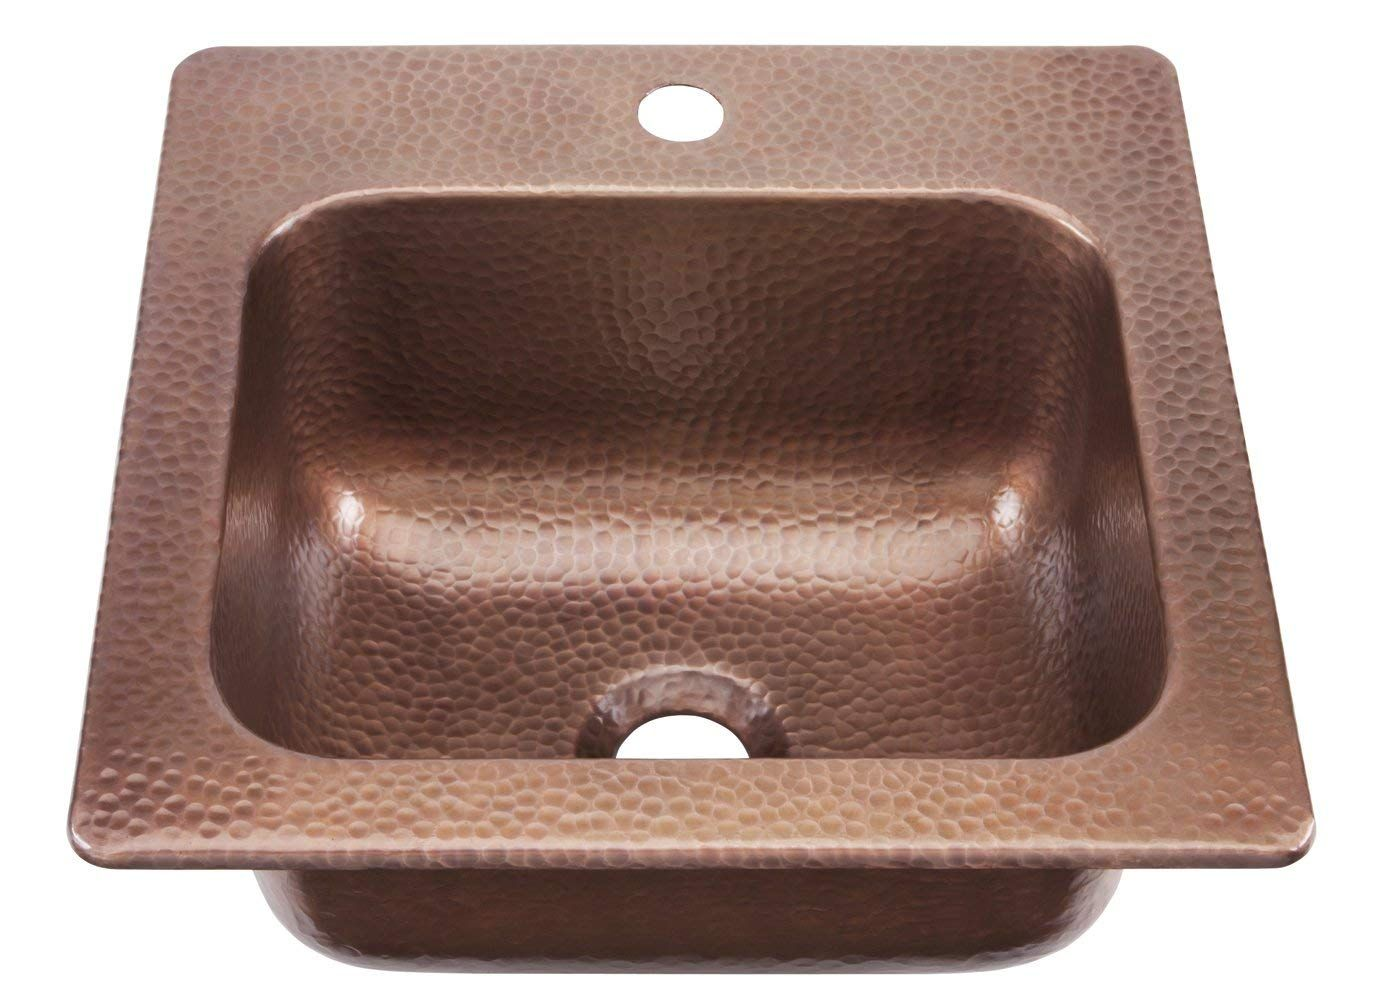 8 Best Copper Sink, Plus 2 to Avoid (2020 Buyers Guide